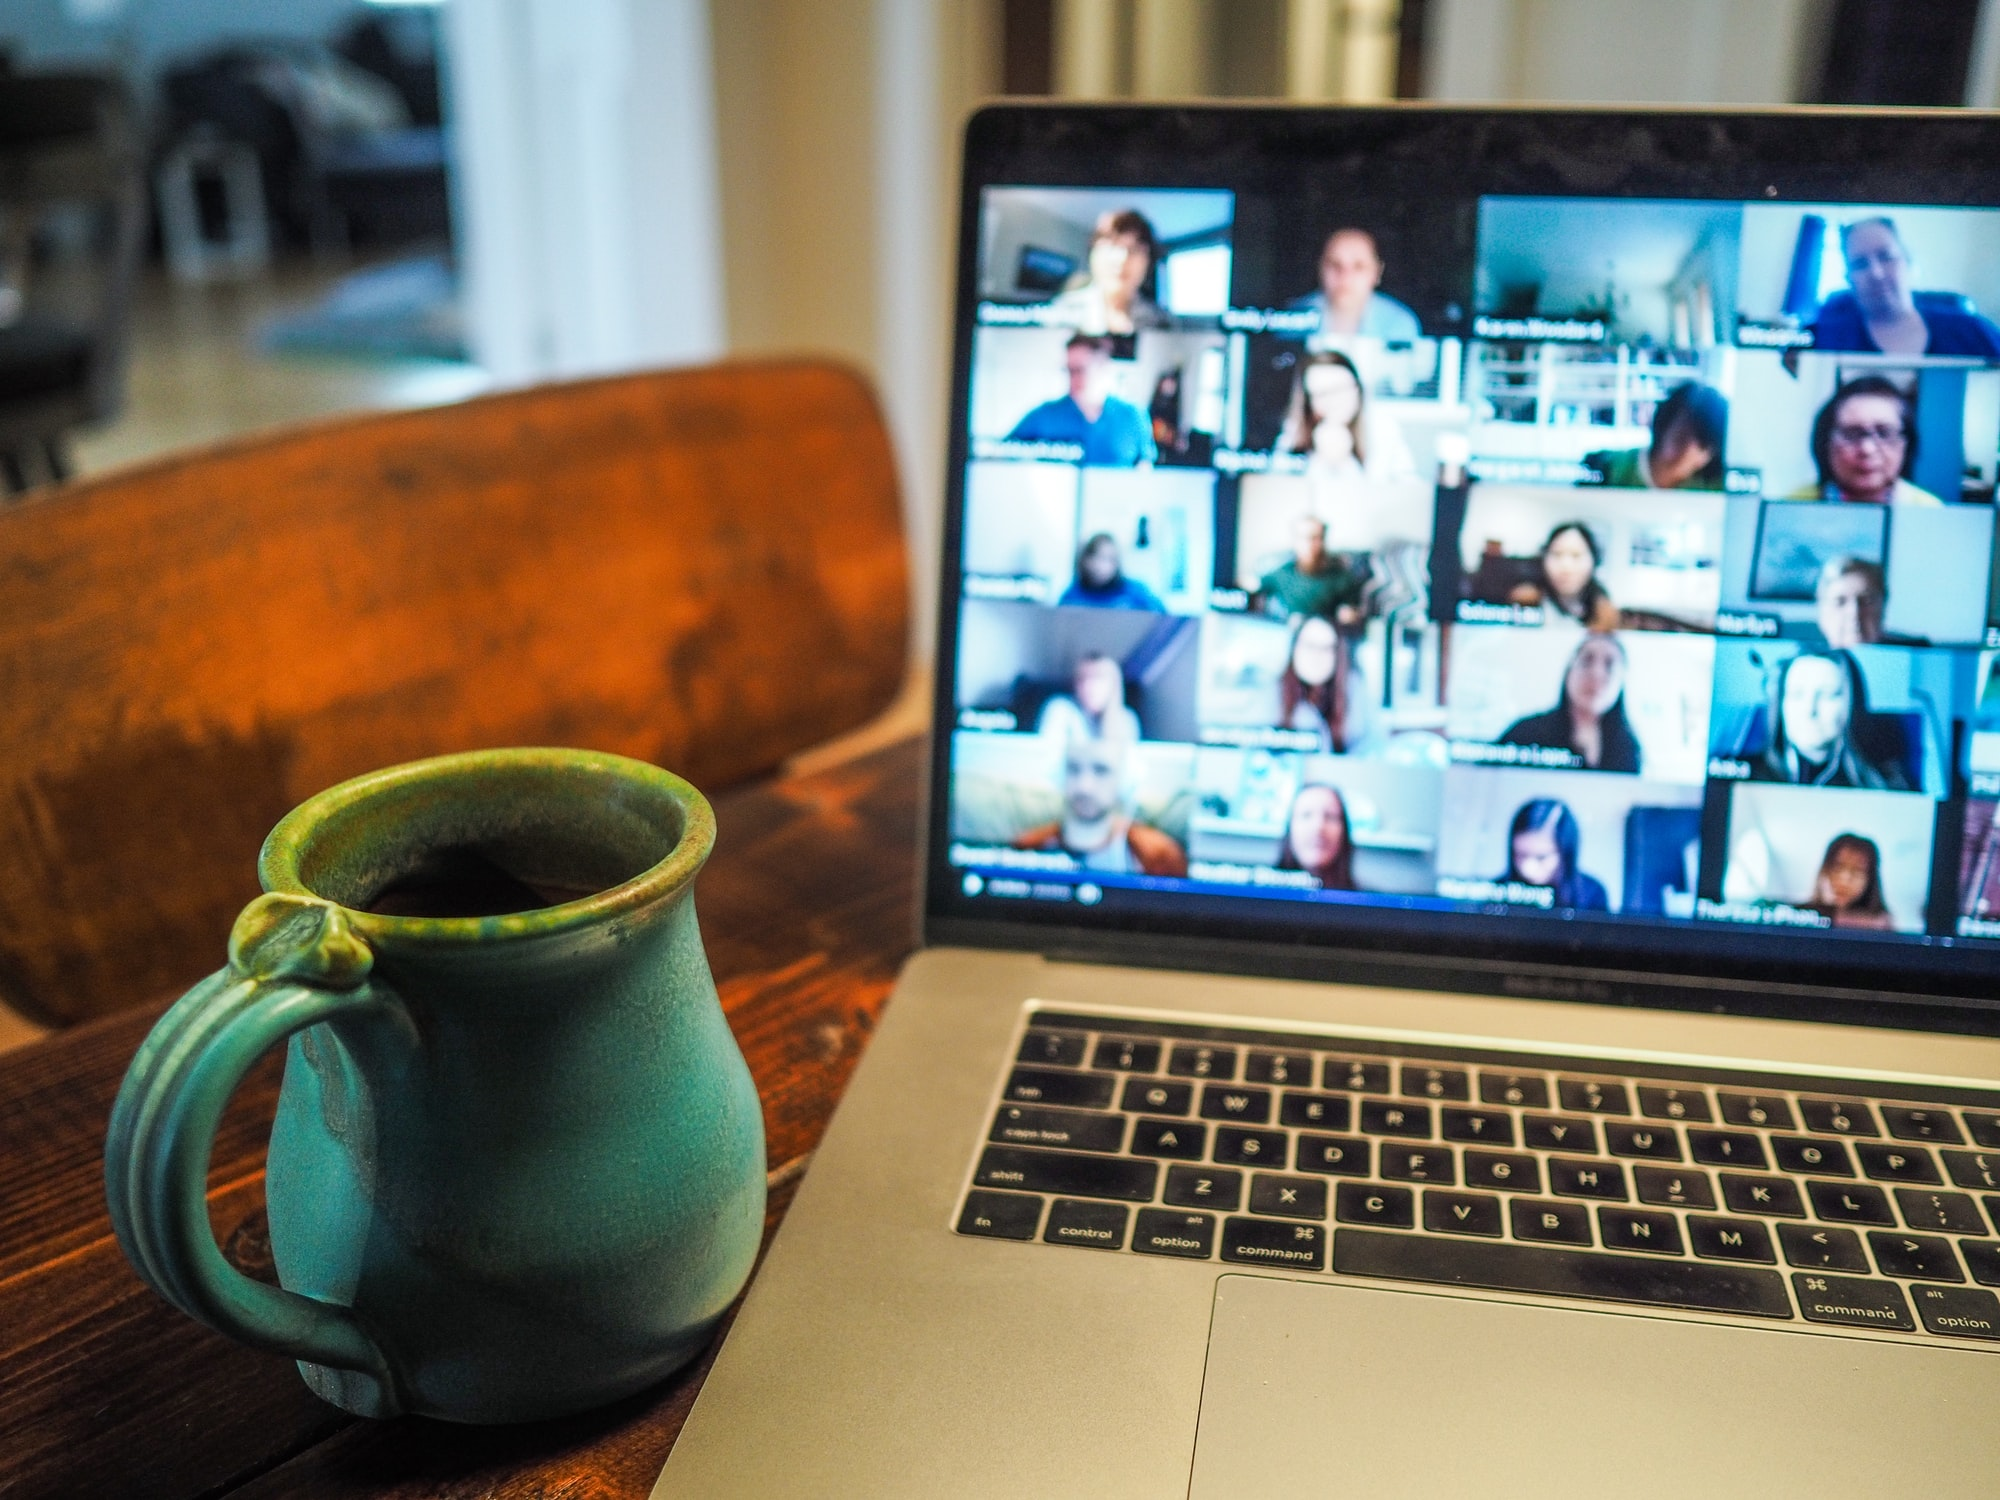 Remote work: how to manage your team remotely?